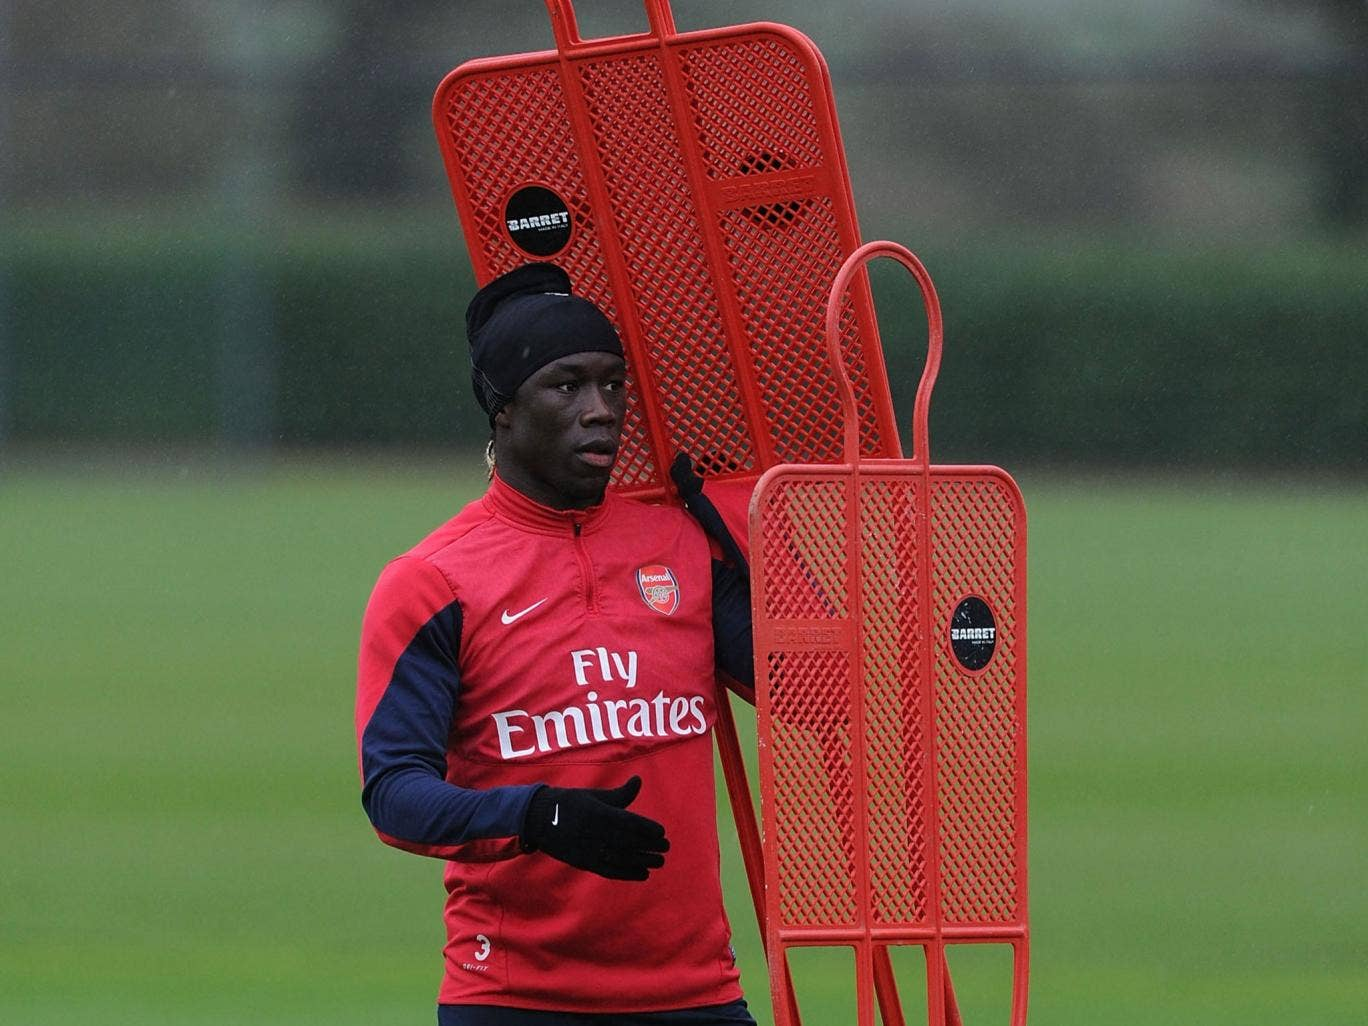 Bacary Sagna has yet to sign a new contract and his present Arsenal deal expires at the end of the season